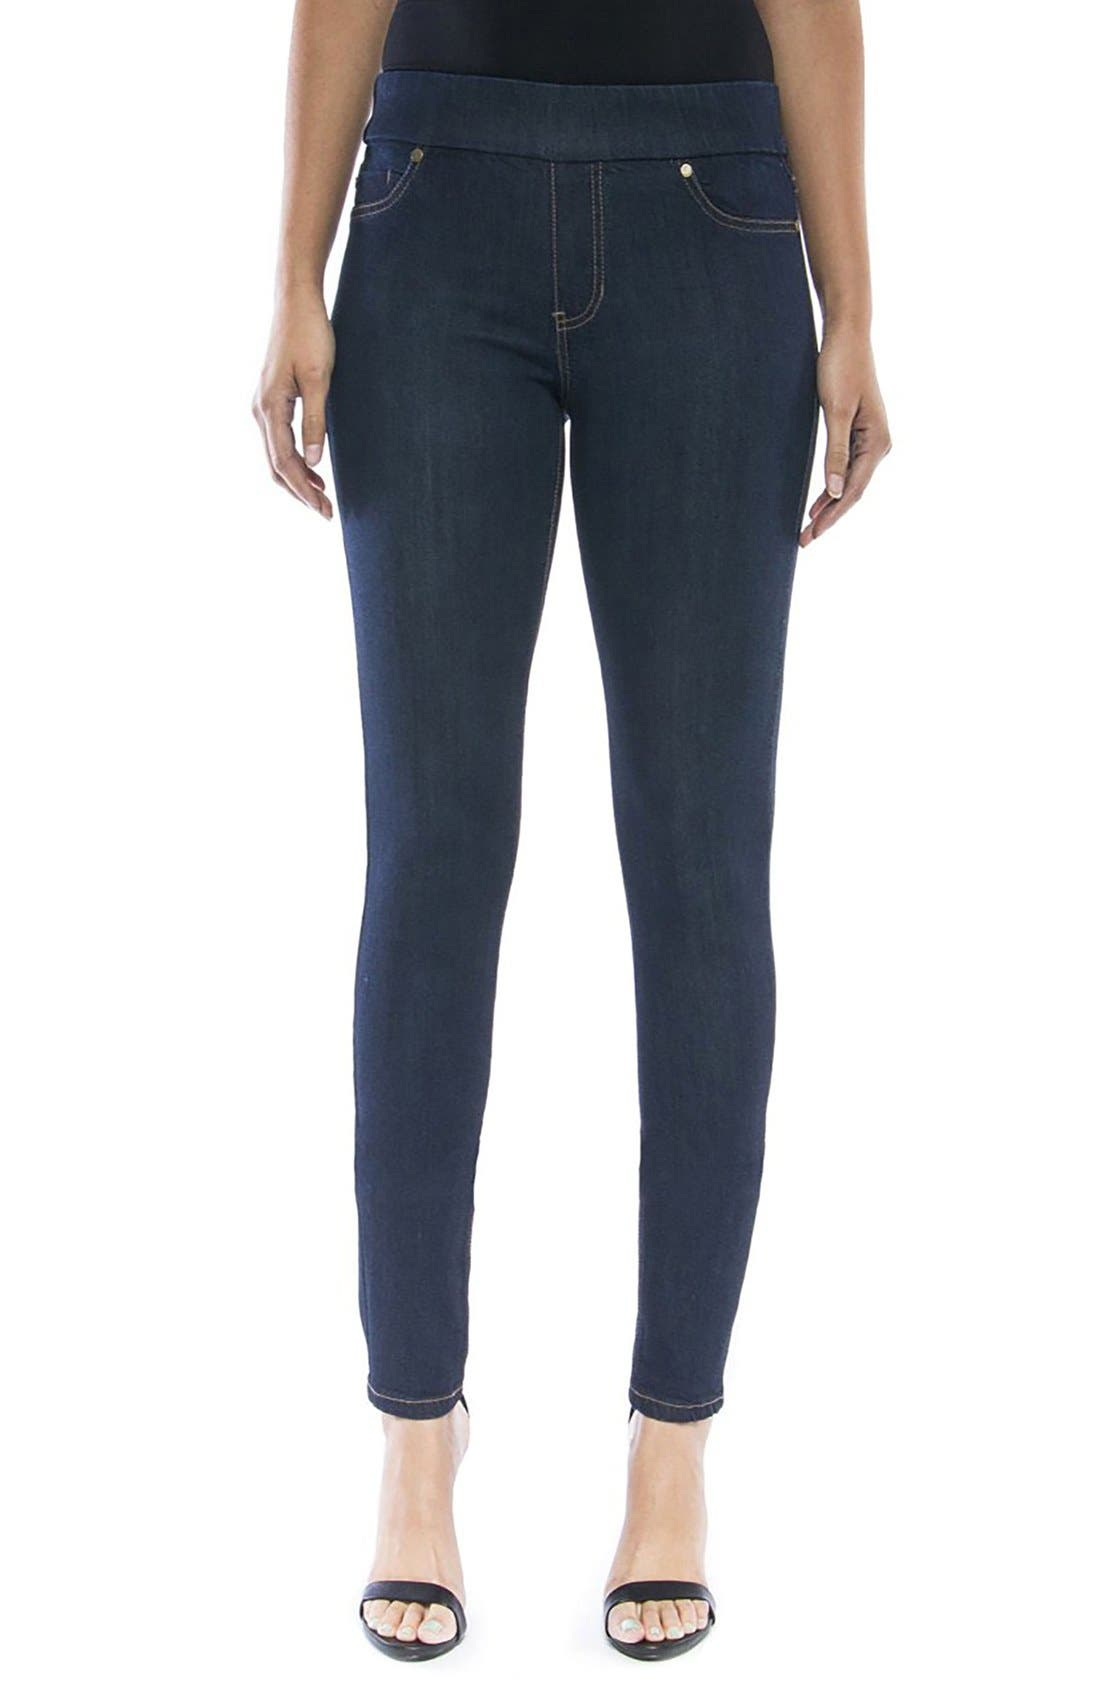 LIVERPOOL JEANS COMPANY Sienna Mid Rise Soft Stretch